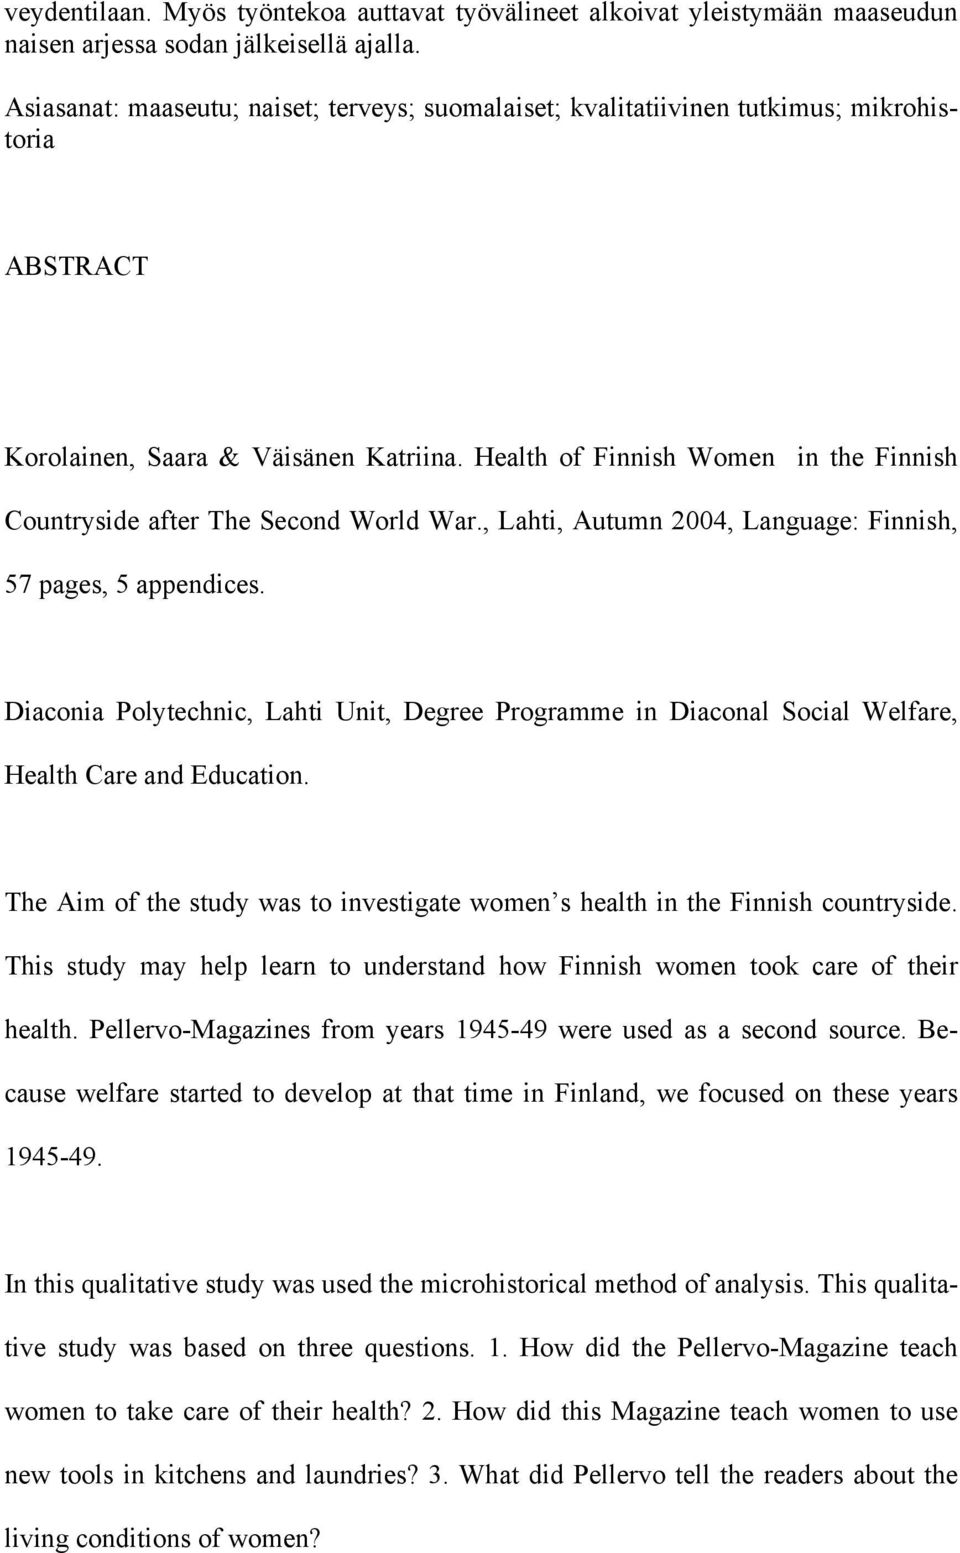 Health of Finnish Women in the Finnish Countryside after The Second World War., Lahti, Autumn 2004, Language: Finnish, 57 pages, 5 appendices.